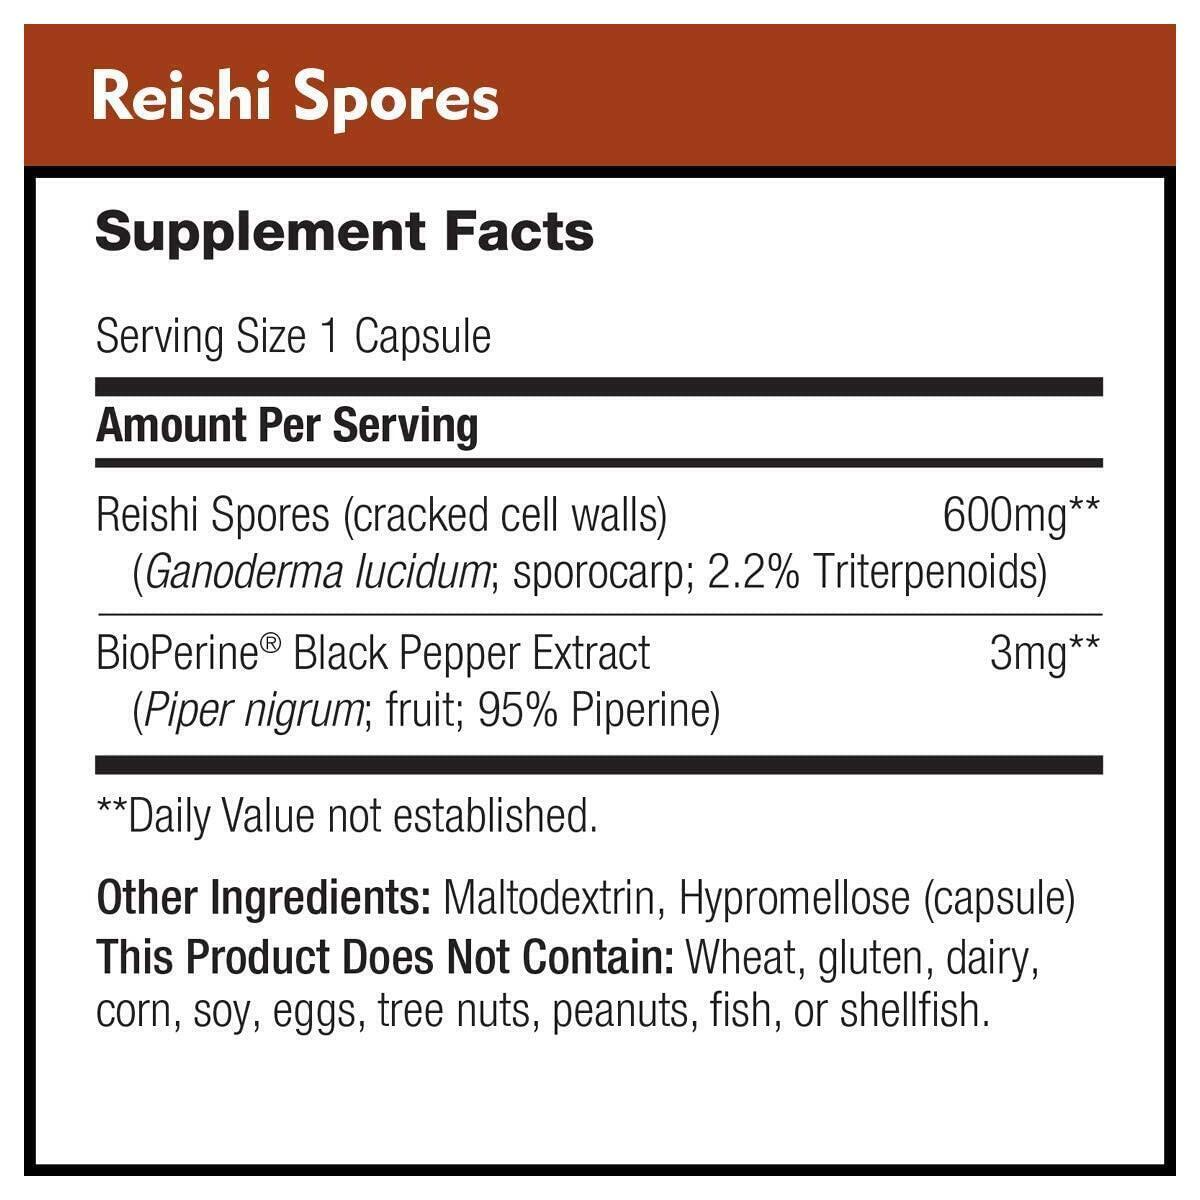 Reishi Spores 600mg by DailyNutra - Therapeutic Immune Booster with 2.2% Triterpenoids | Reishi Mushroom Spore Extract with Cracked Cell Walls for Increased Absorption (90 Capsules)